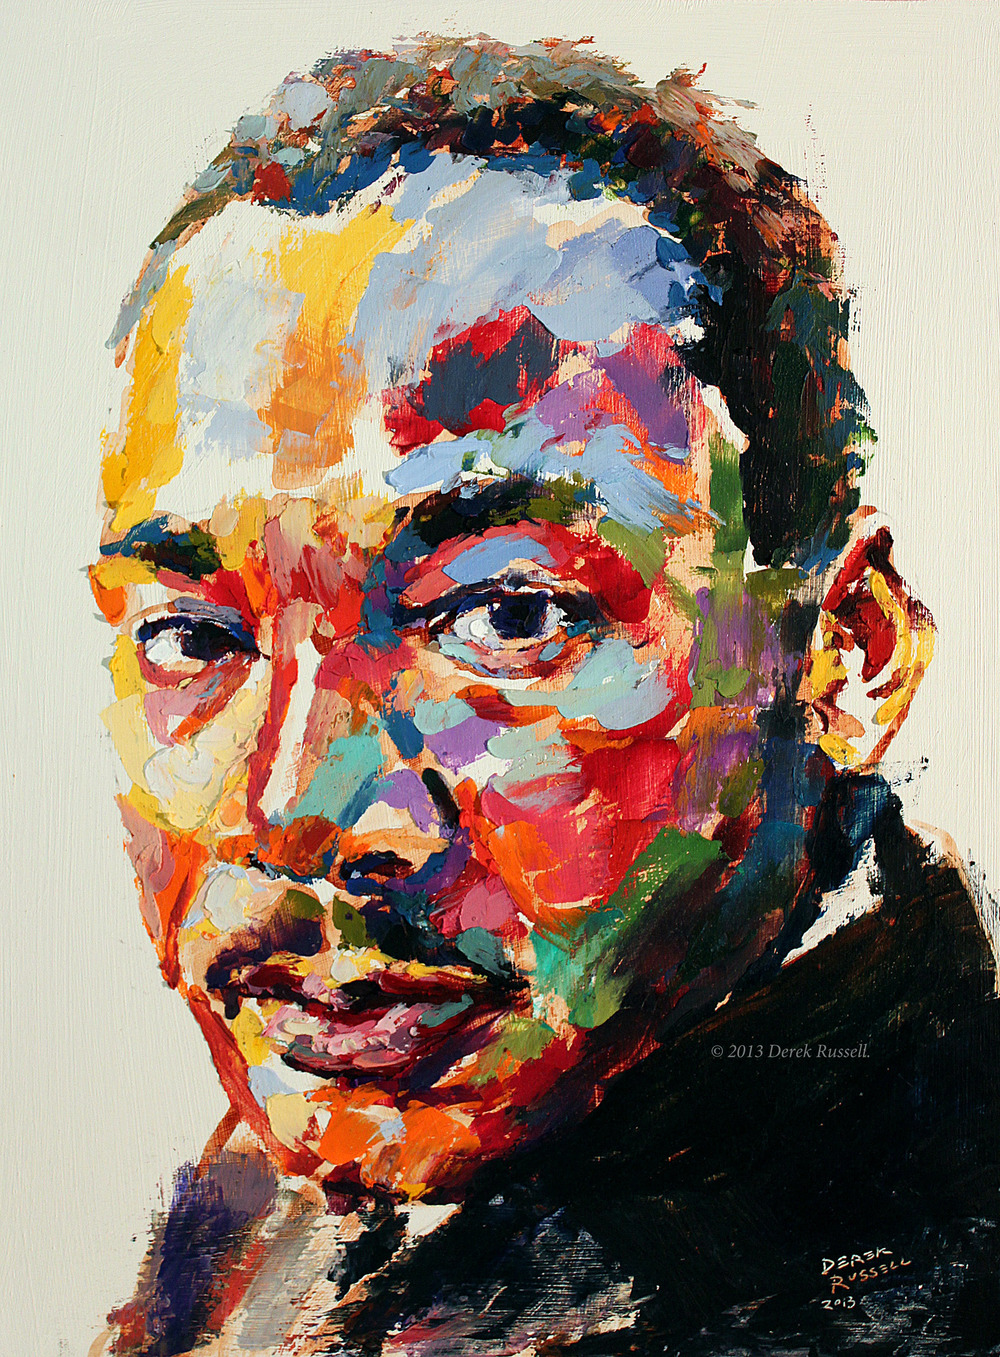 martin luther king jr essays martin luther king jr essays martin luther king jr essays martin luther king jr essays and papers order paper online